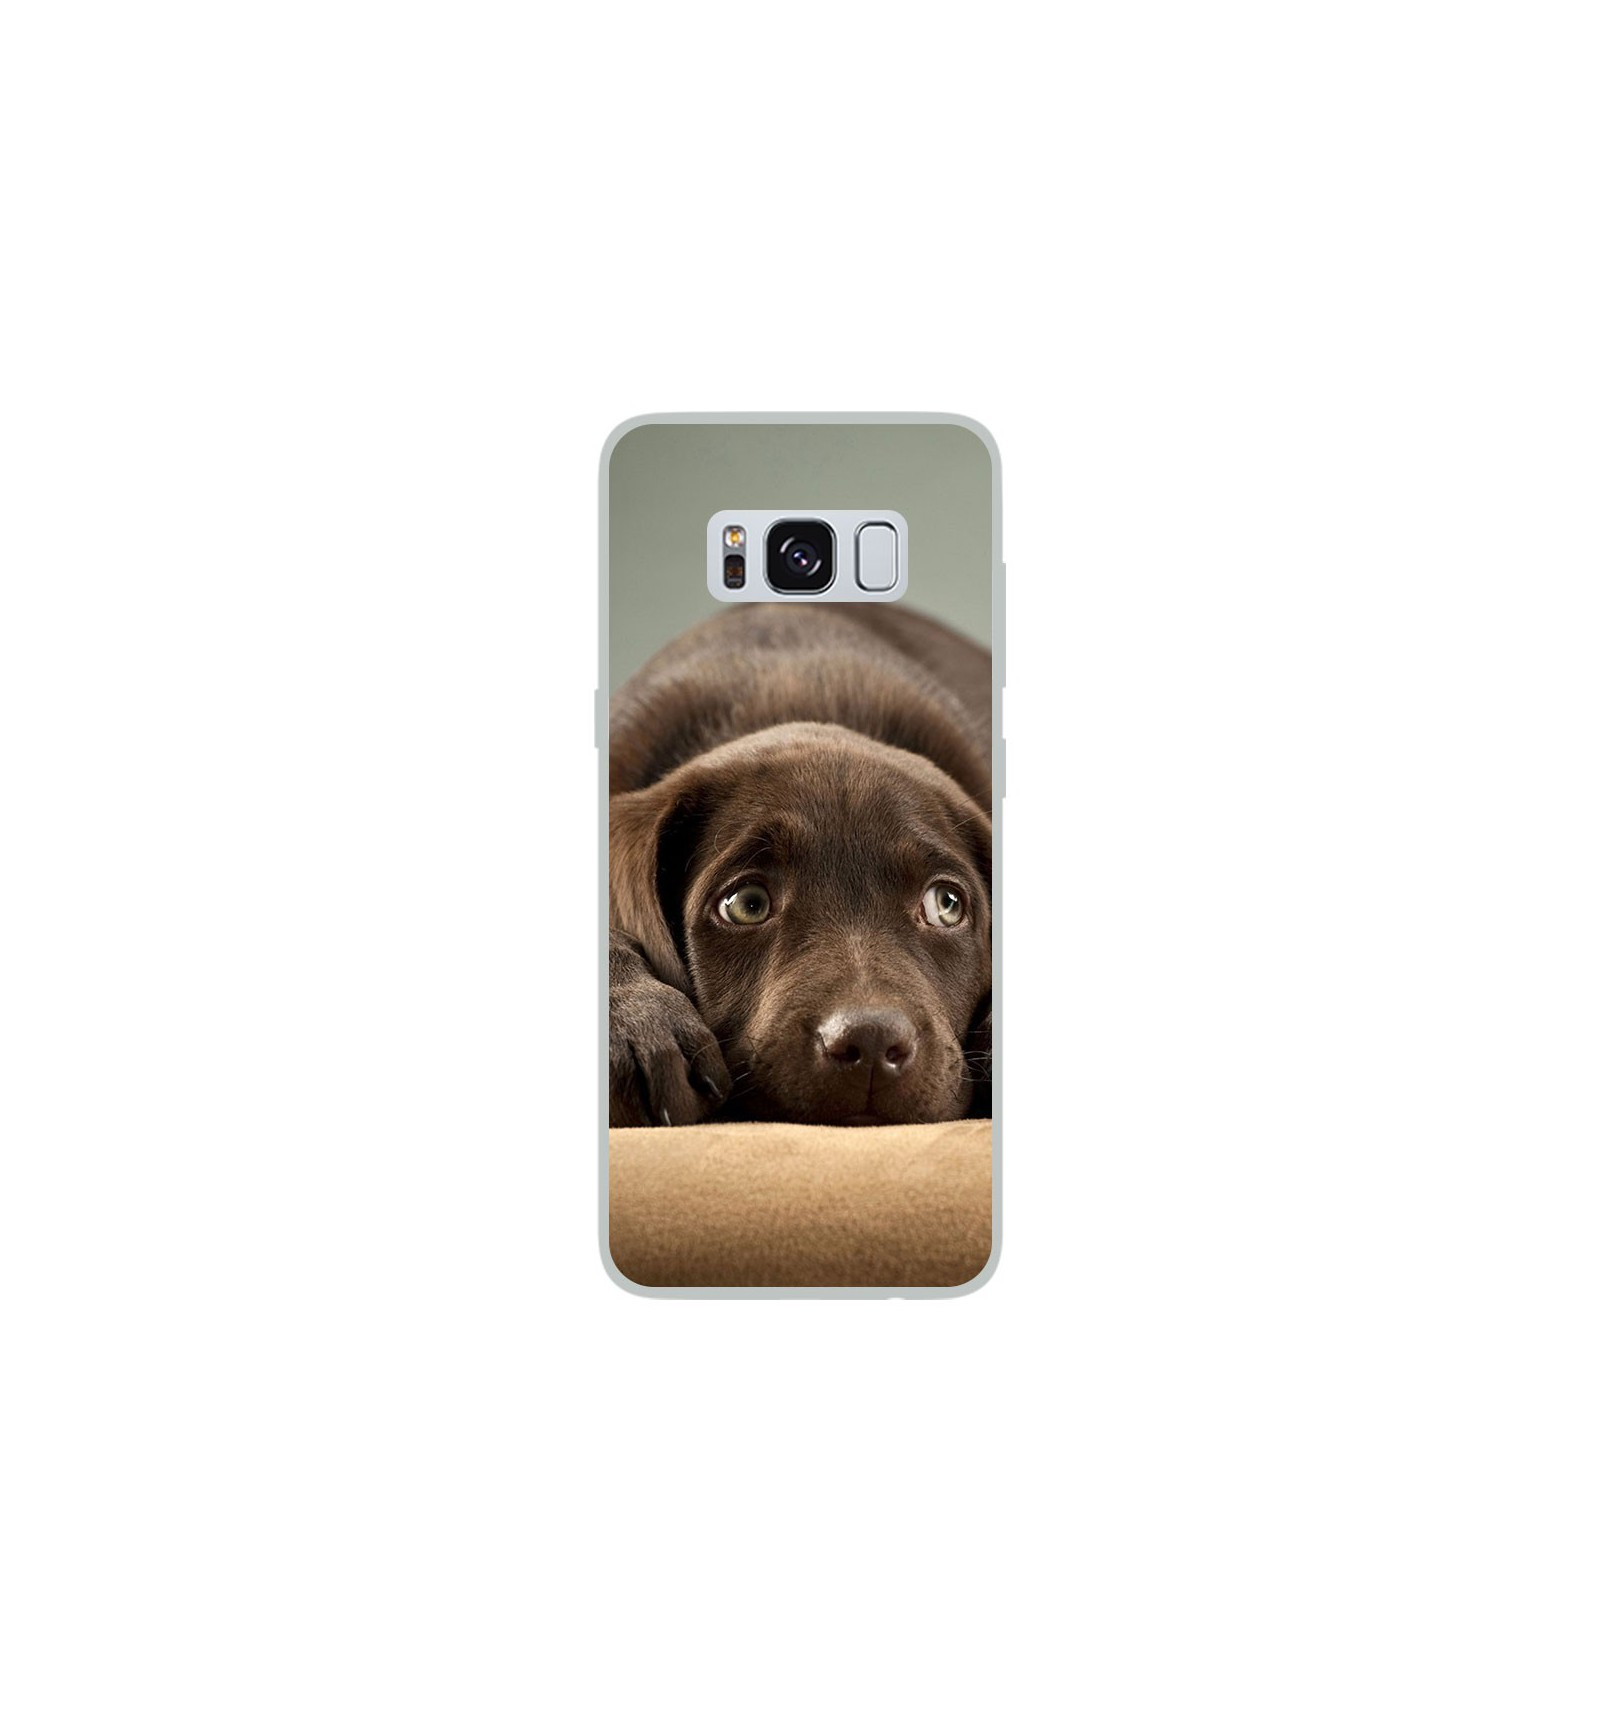 coque en silicone samsung galaxy s8 chiot marron. Black Bedroom Furniture Sets. Home Design Ideas